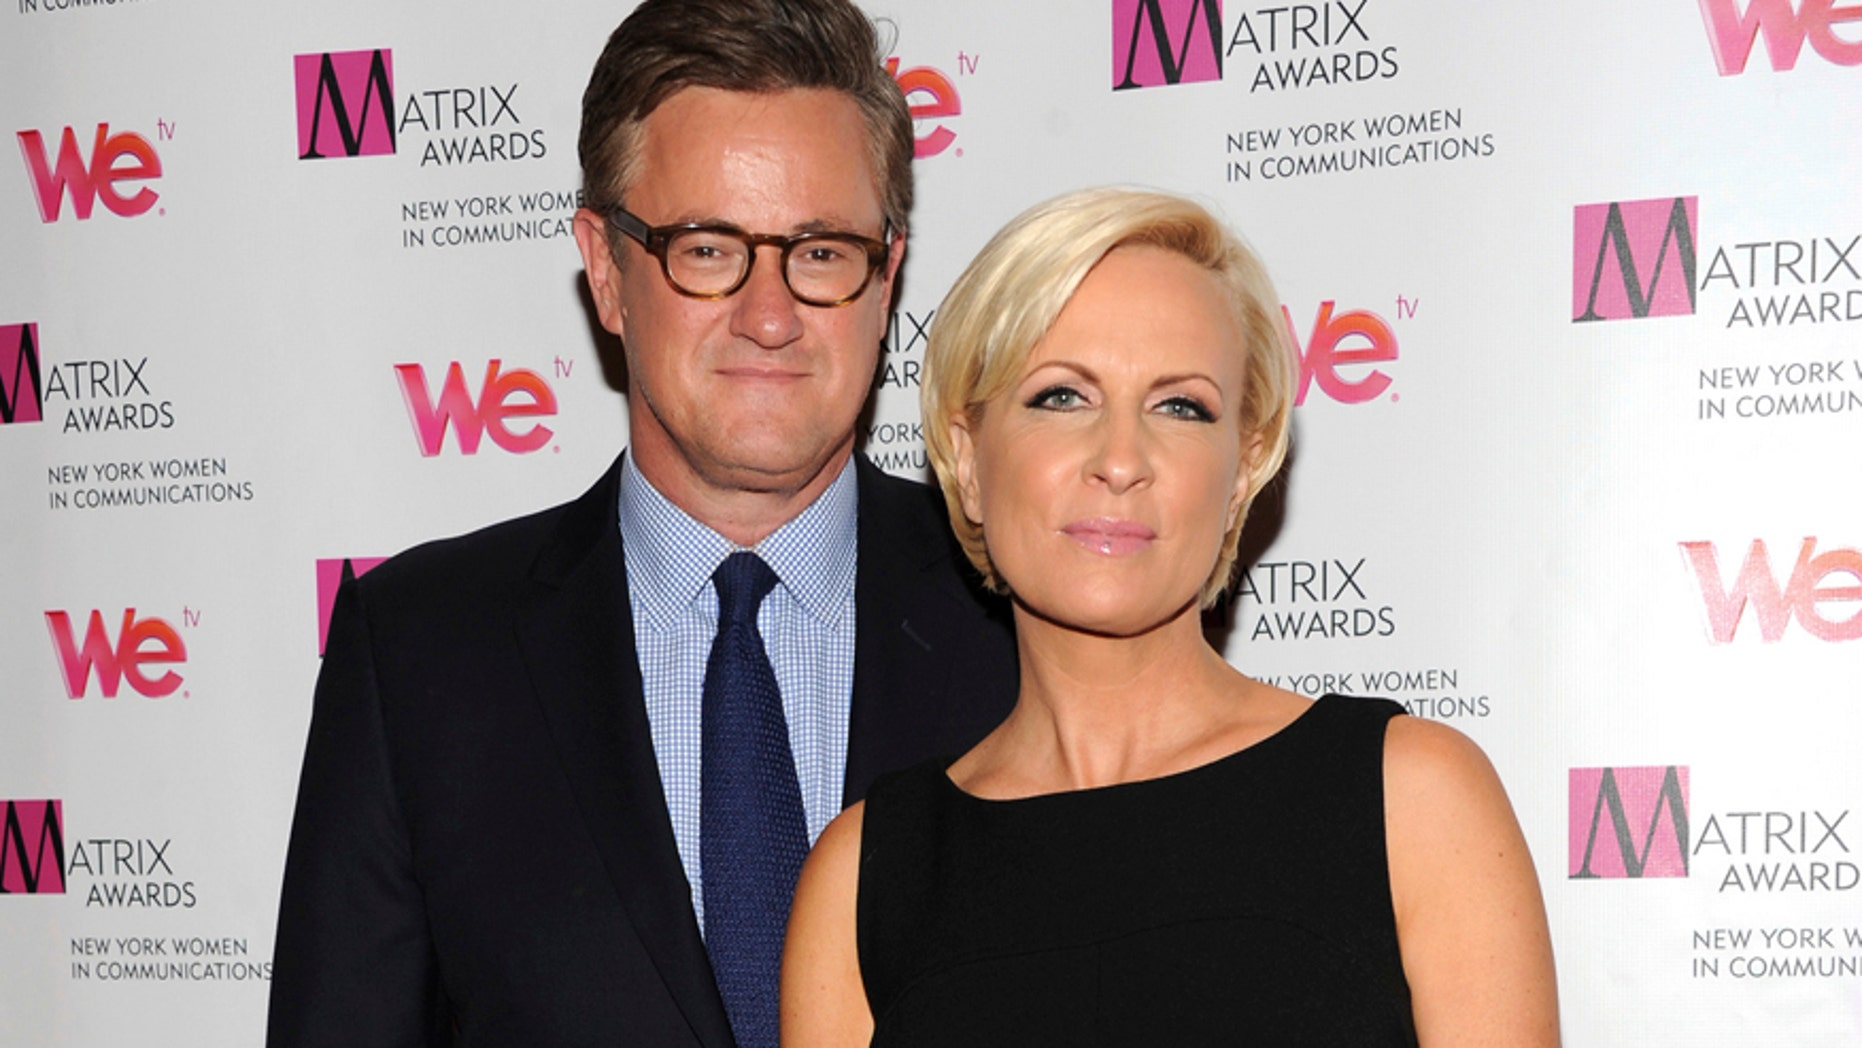 "In this Monday April 22, 2013, file photo, MSNBC's ""Morning Joe"" co-hosts Joe Scarborough and Mika Brzezinski, right, attend the 2013 Matrix New York Women in Communications Awards at the Waldorf-Astoria Hotel in New York. MSNBC confirmed Thursday, May 4, 2017, that the ""Morning Joe"" co-hosts are engaged."